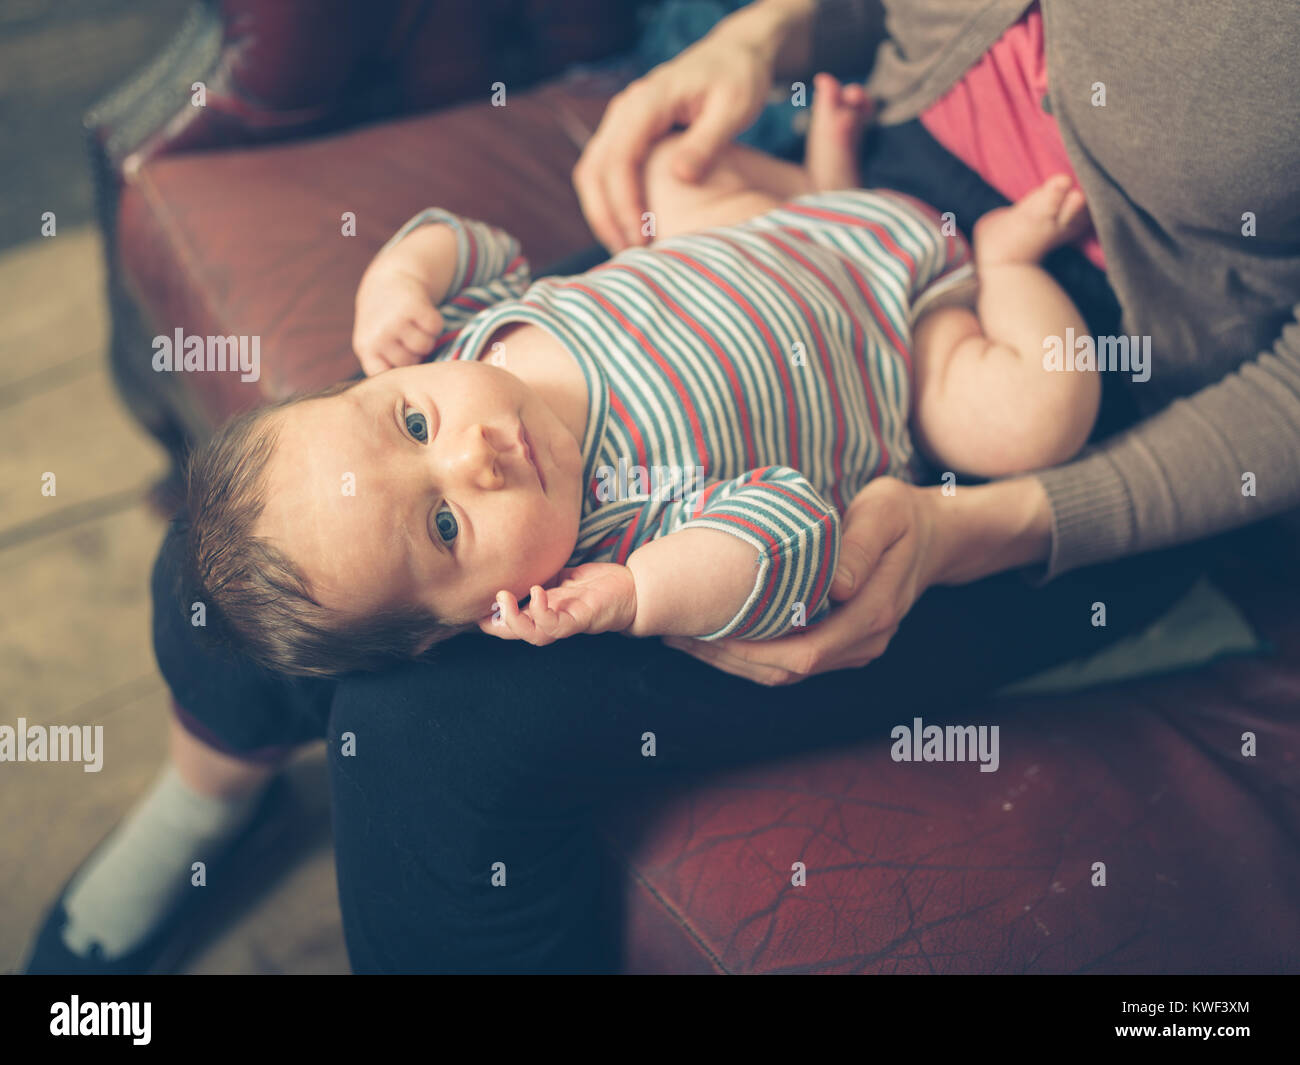 A happy baby on the lap of its mother at home - Stock Image